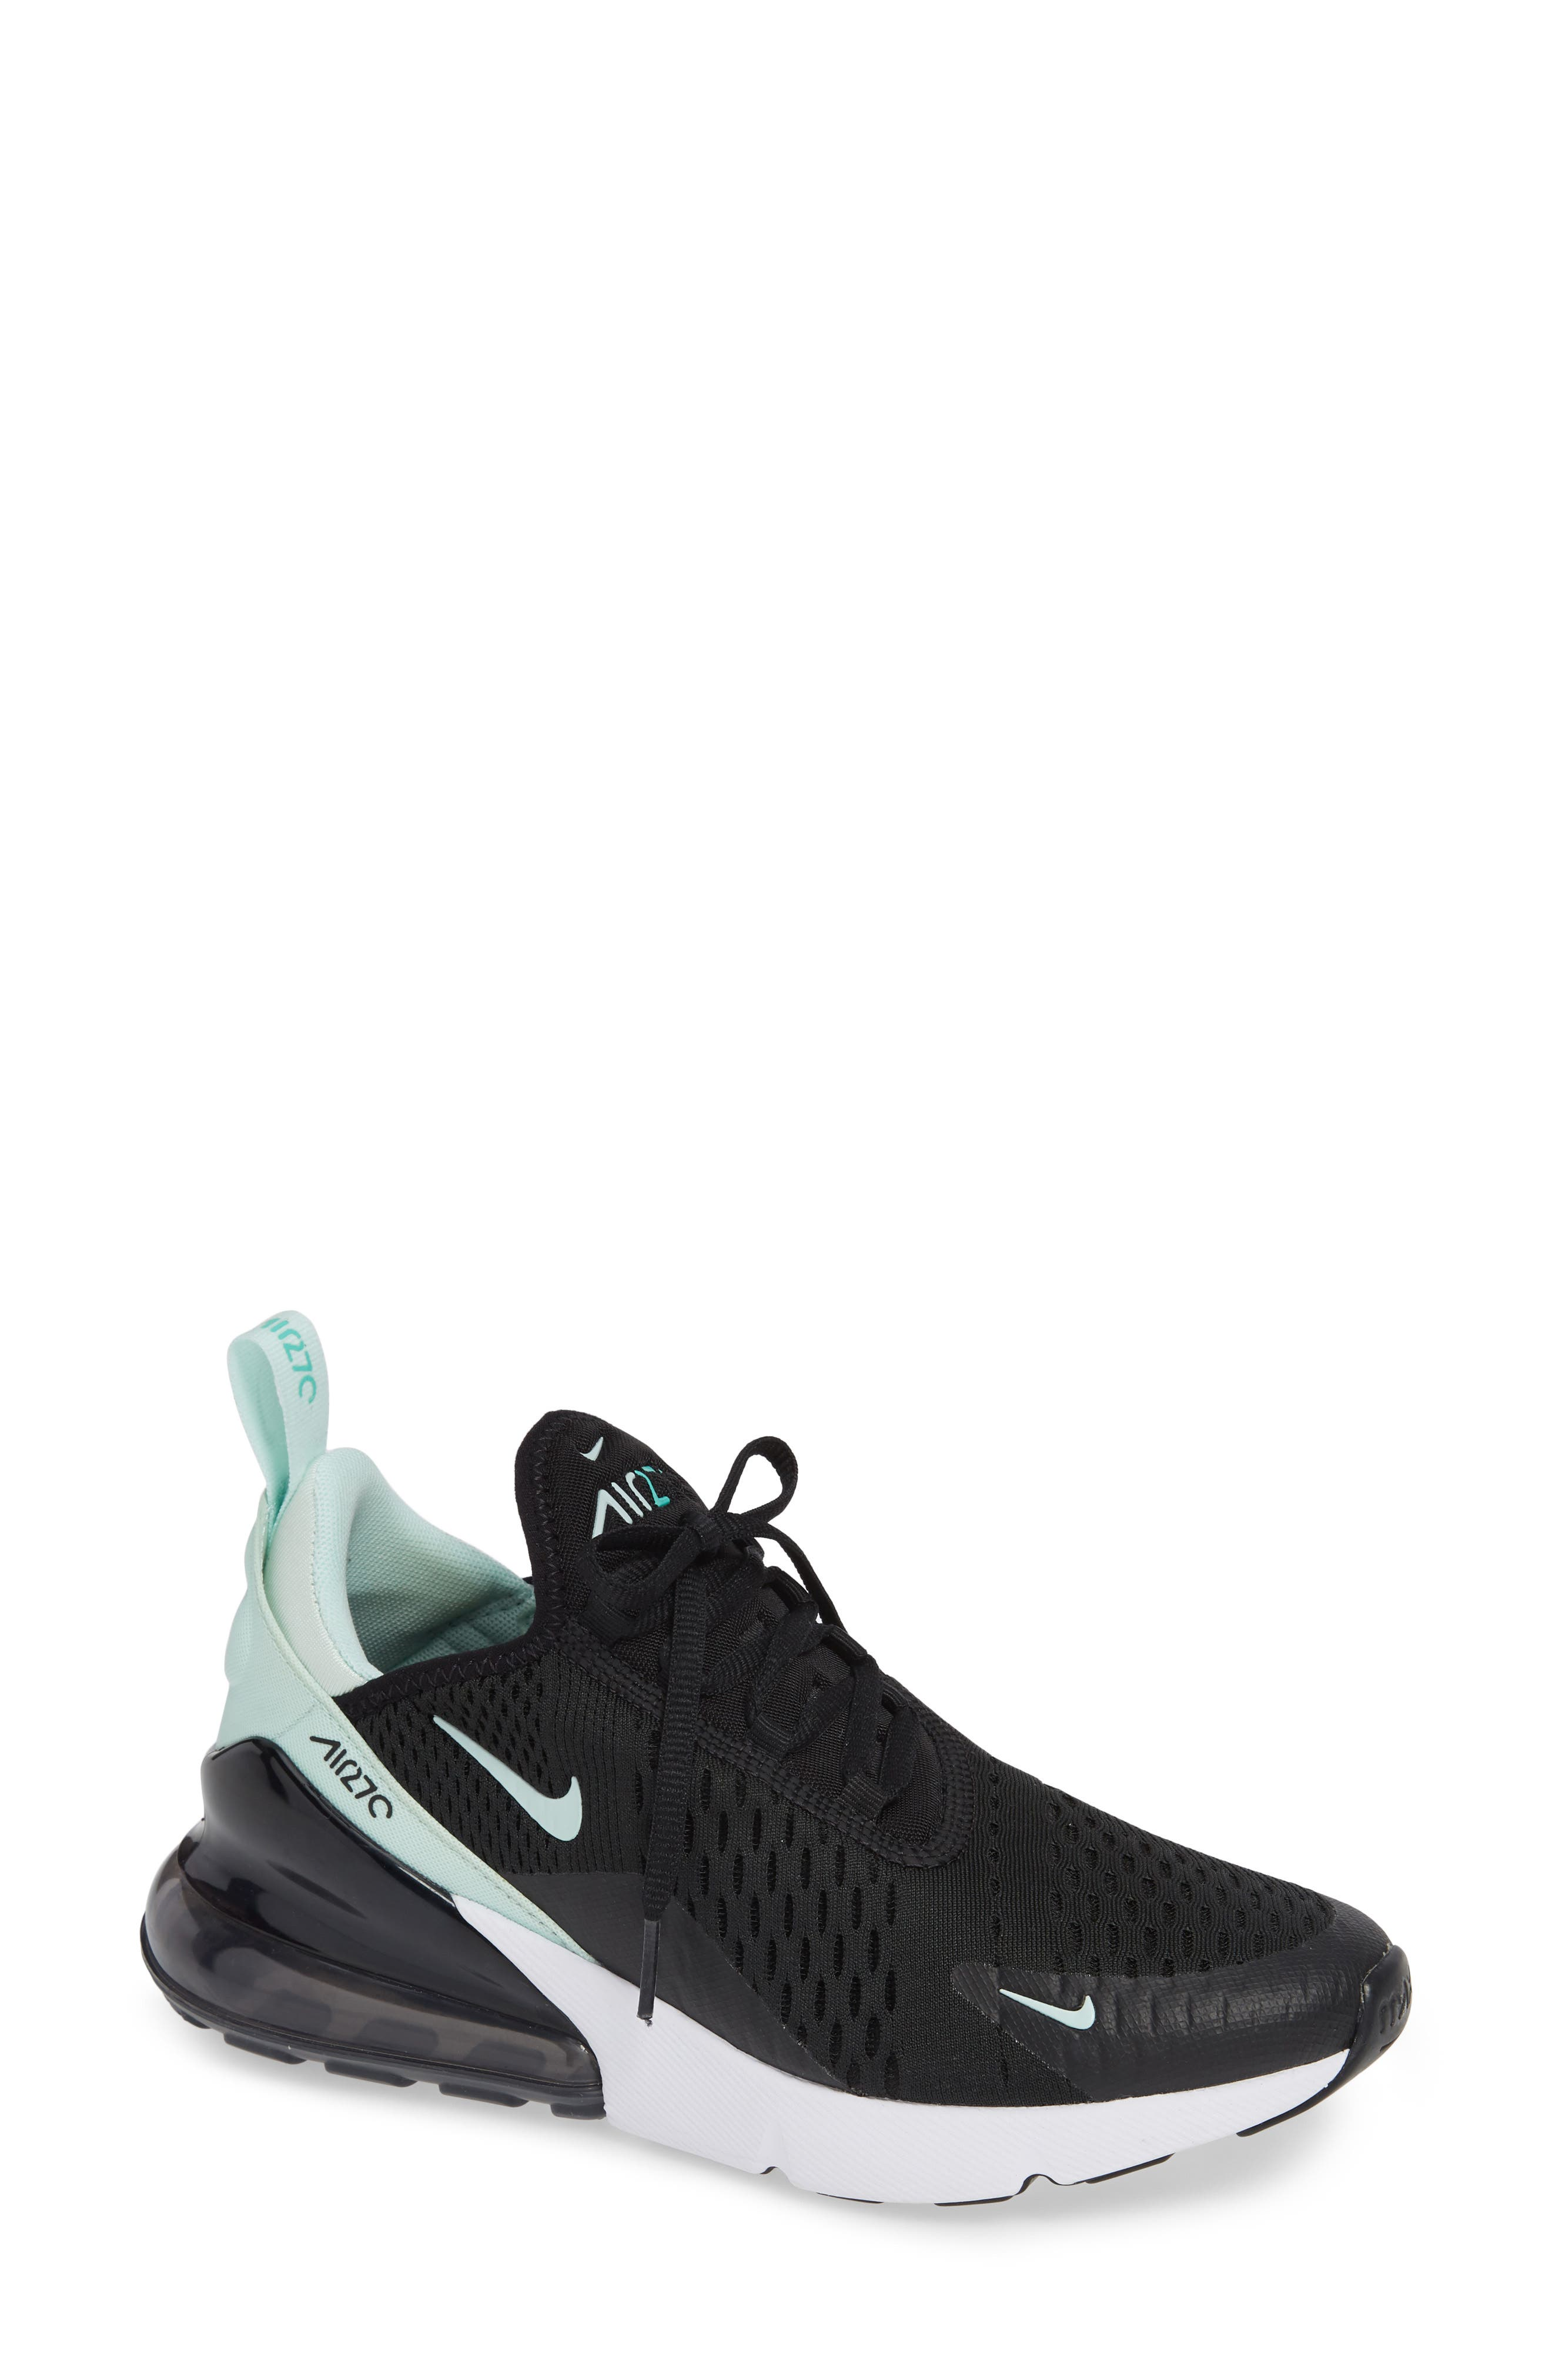 Air Max 270 Premium Sneaker,                         Main,                         color, BLACK/ IGLOO TURQUOISE WHITE